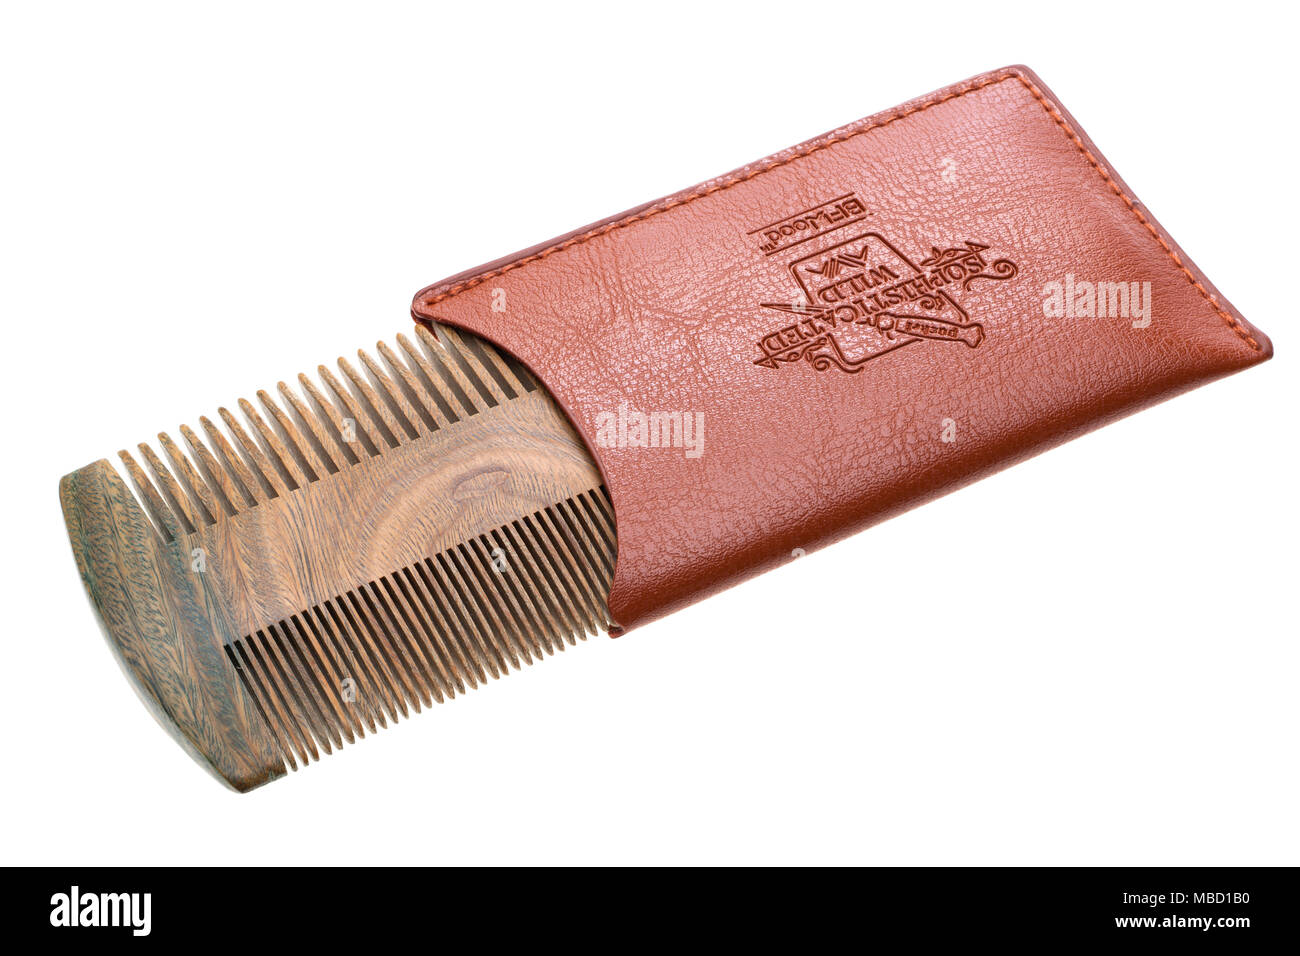 BFWood Beard & Moustache Pocket Comb - Sandalwood Comb with Leather Case - Stock Image